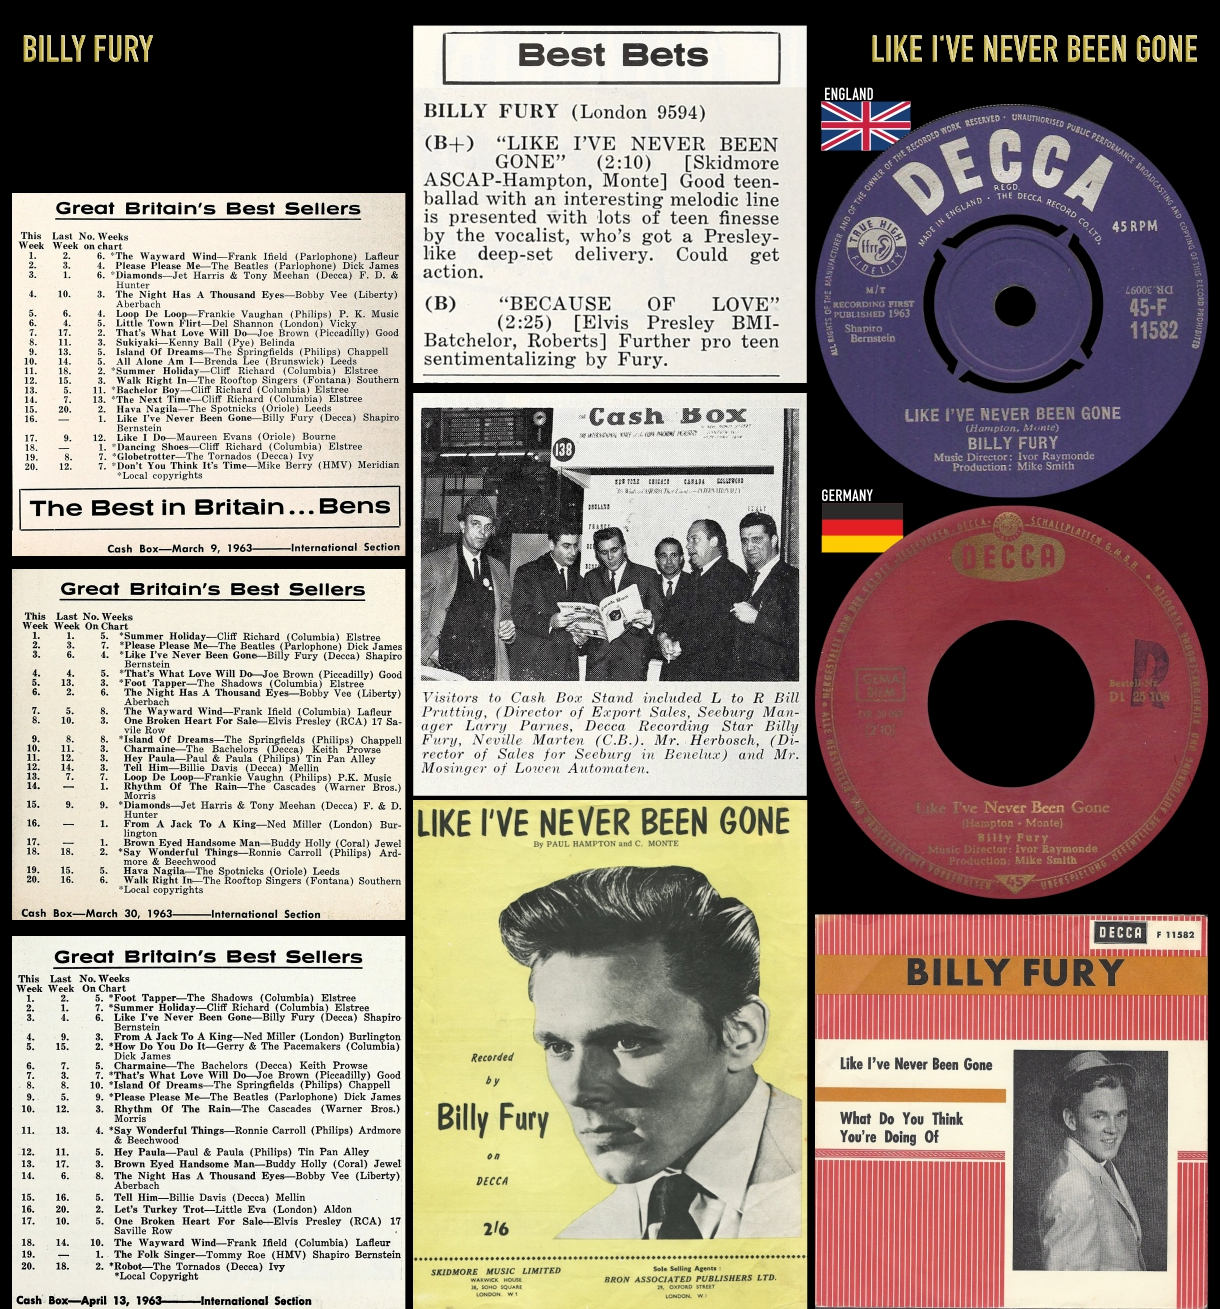 630216_Billy Fury_Like I've Never Been Gone_new